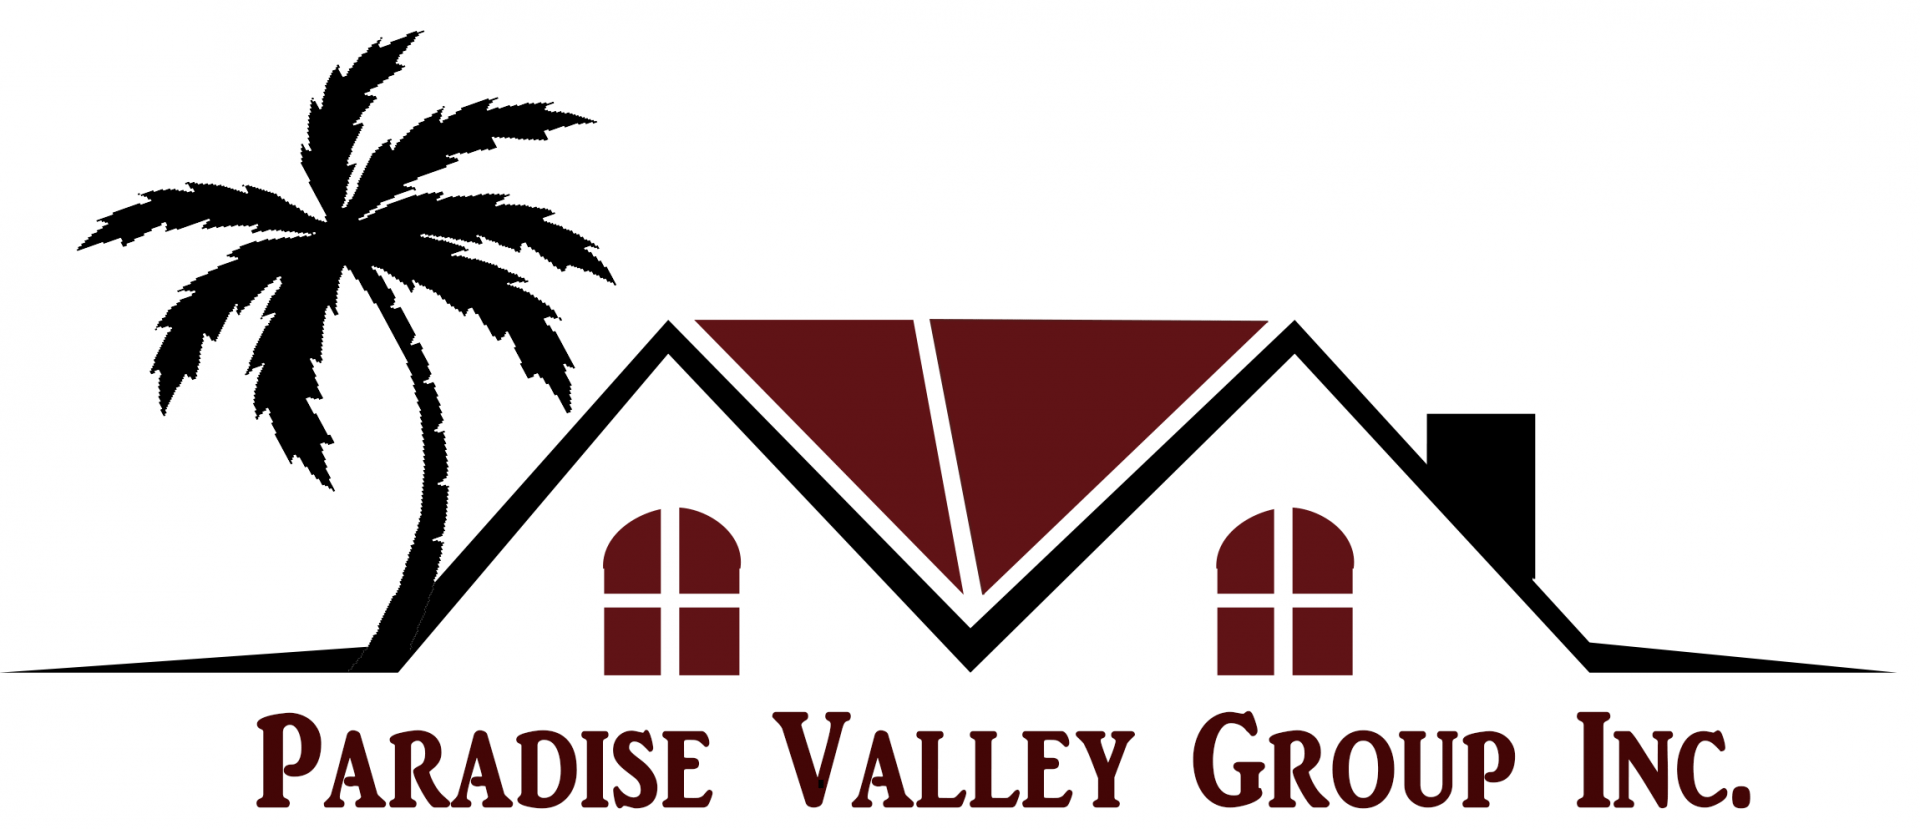 Paradise Valley Group, Inc. logo